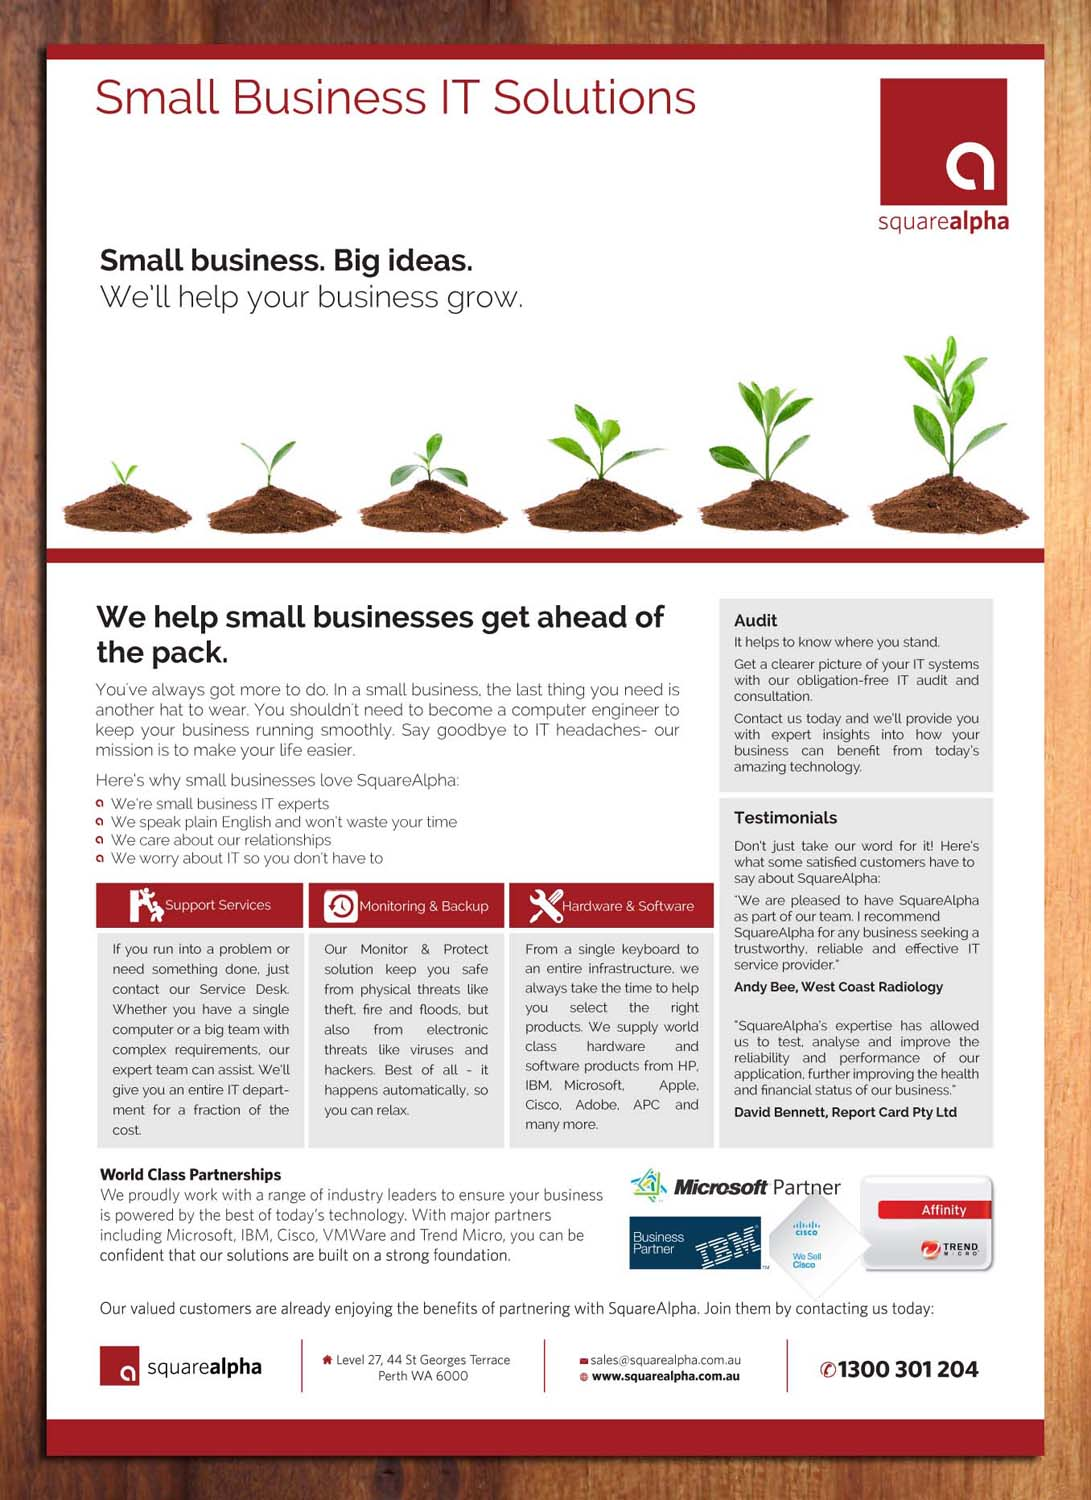 Small Business Flyer Design for SquareAlpha by Sbss | Design #3780150